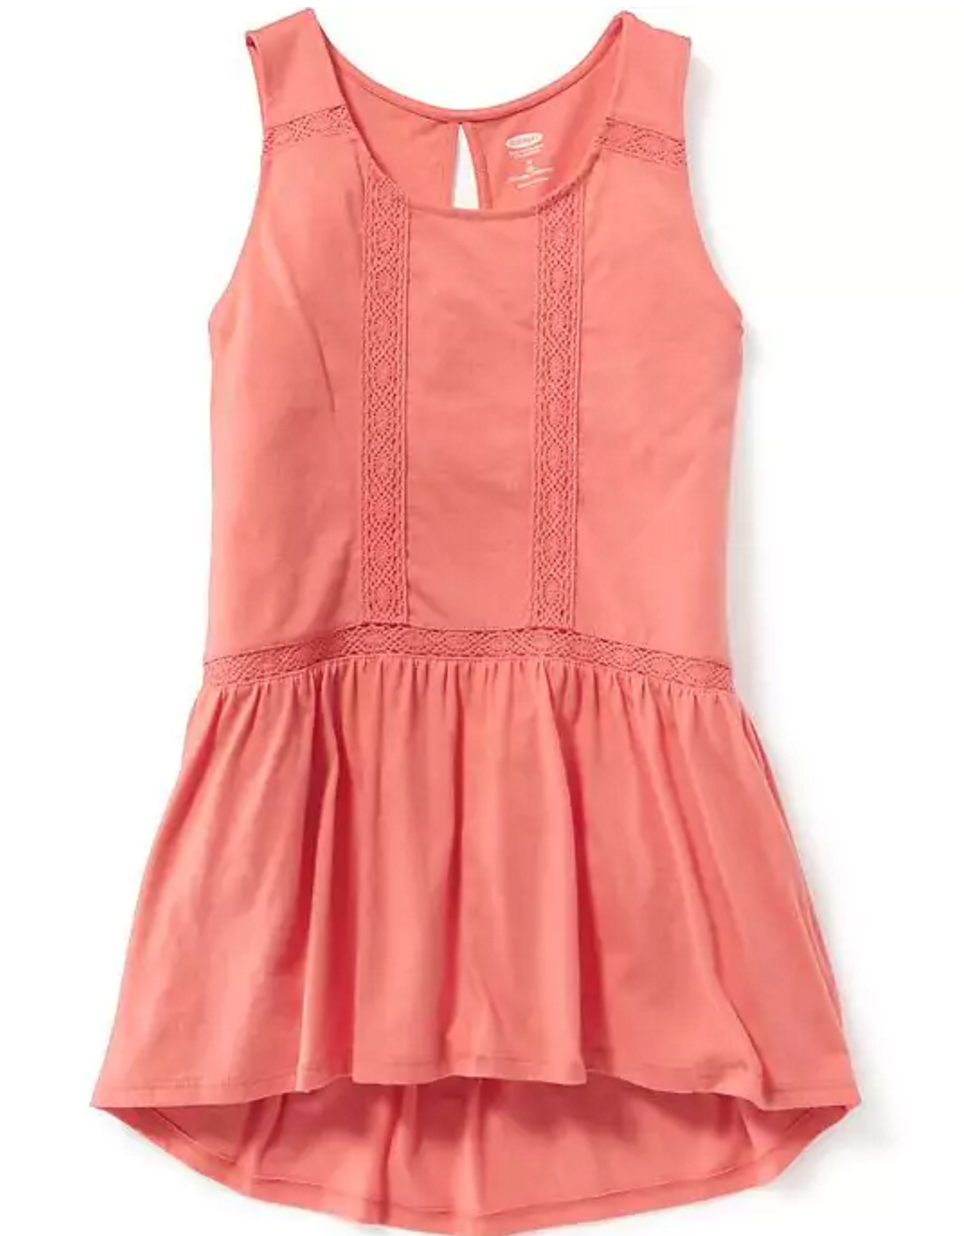 Tanger Outlets Old Navy Outlet girl's peplum tank top